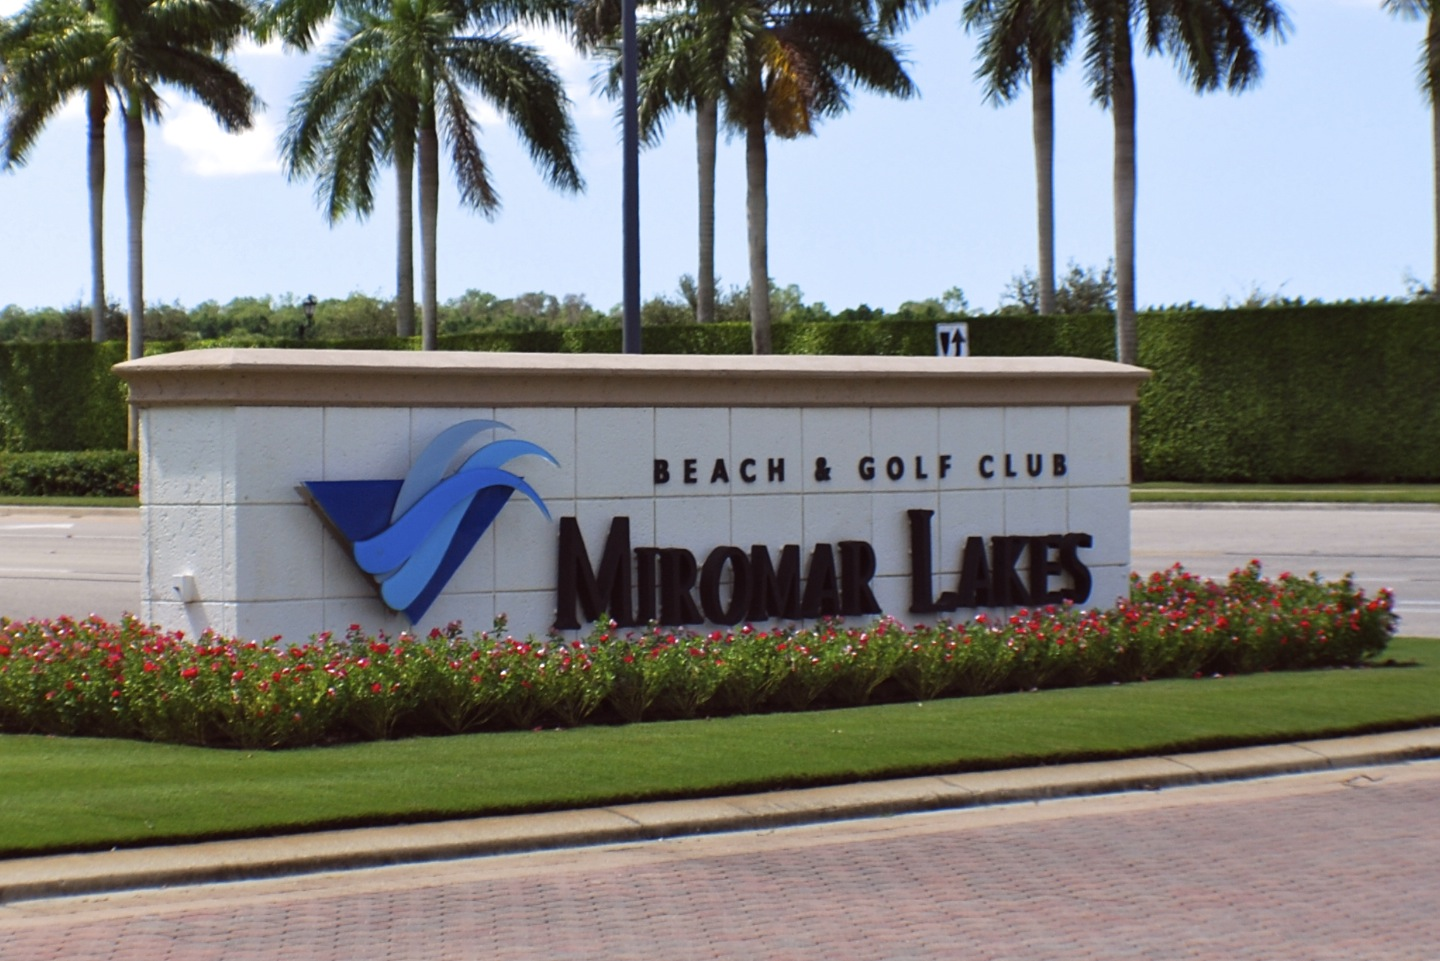 Miromar Lakes Beach And Golf Club